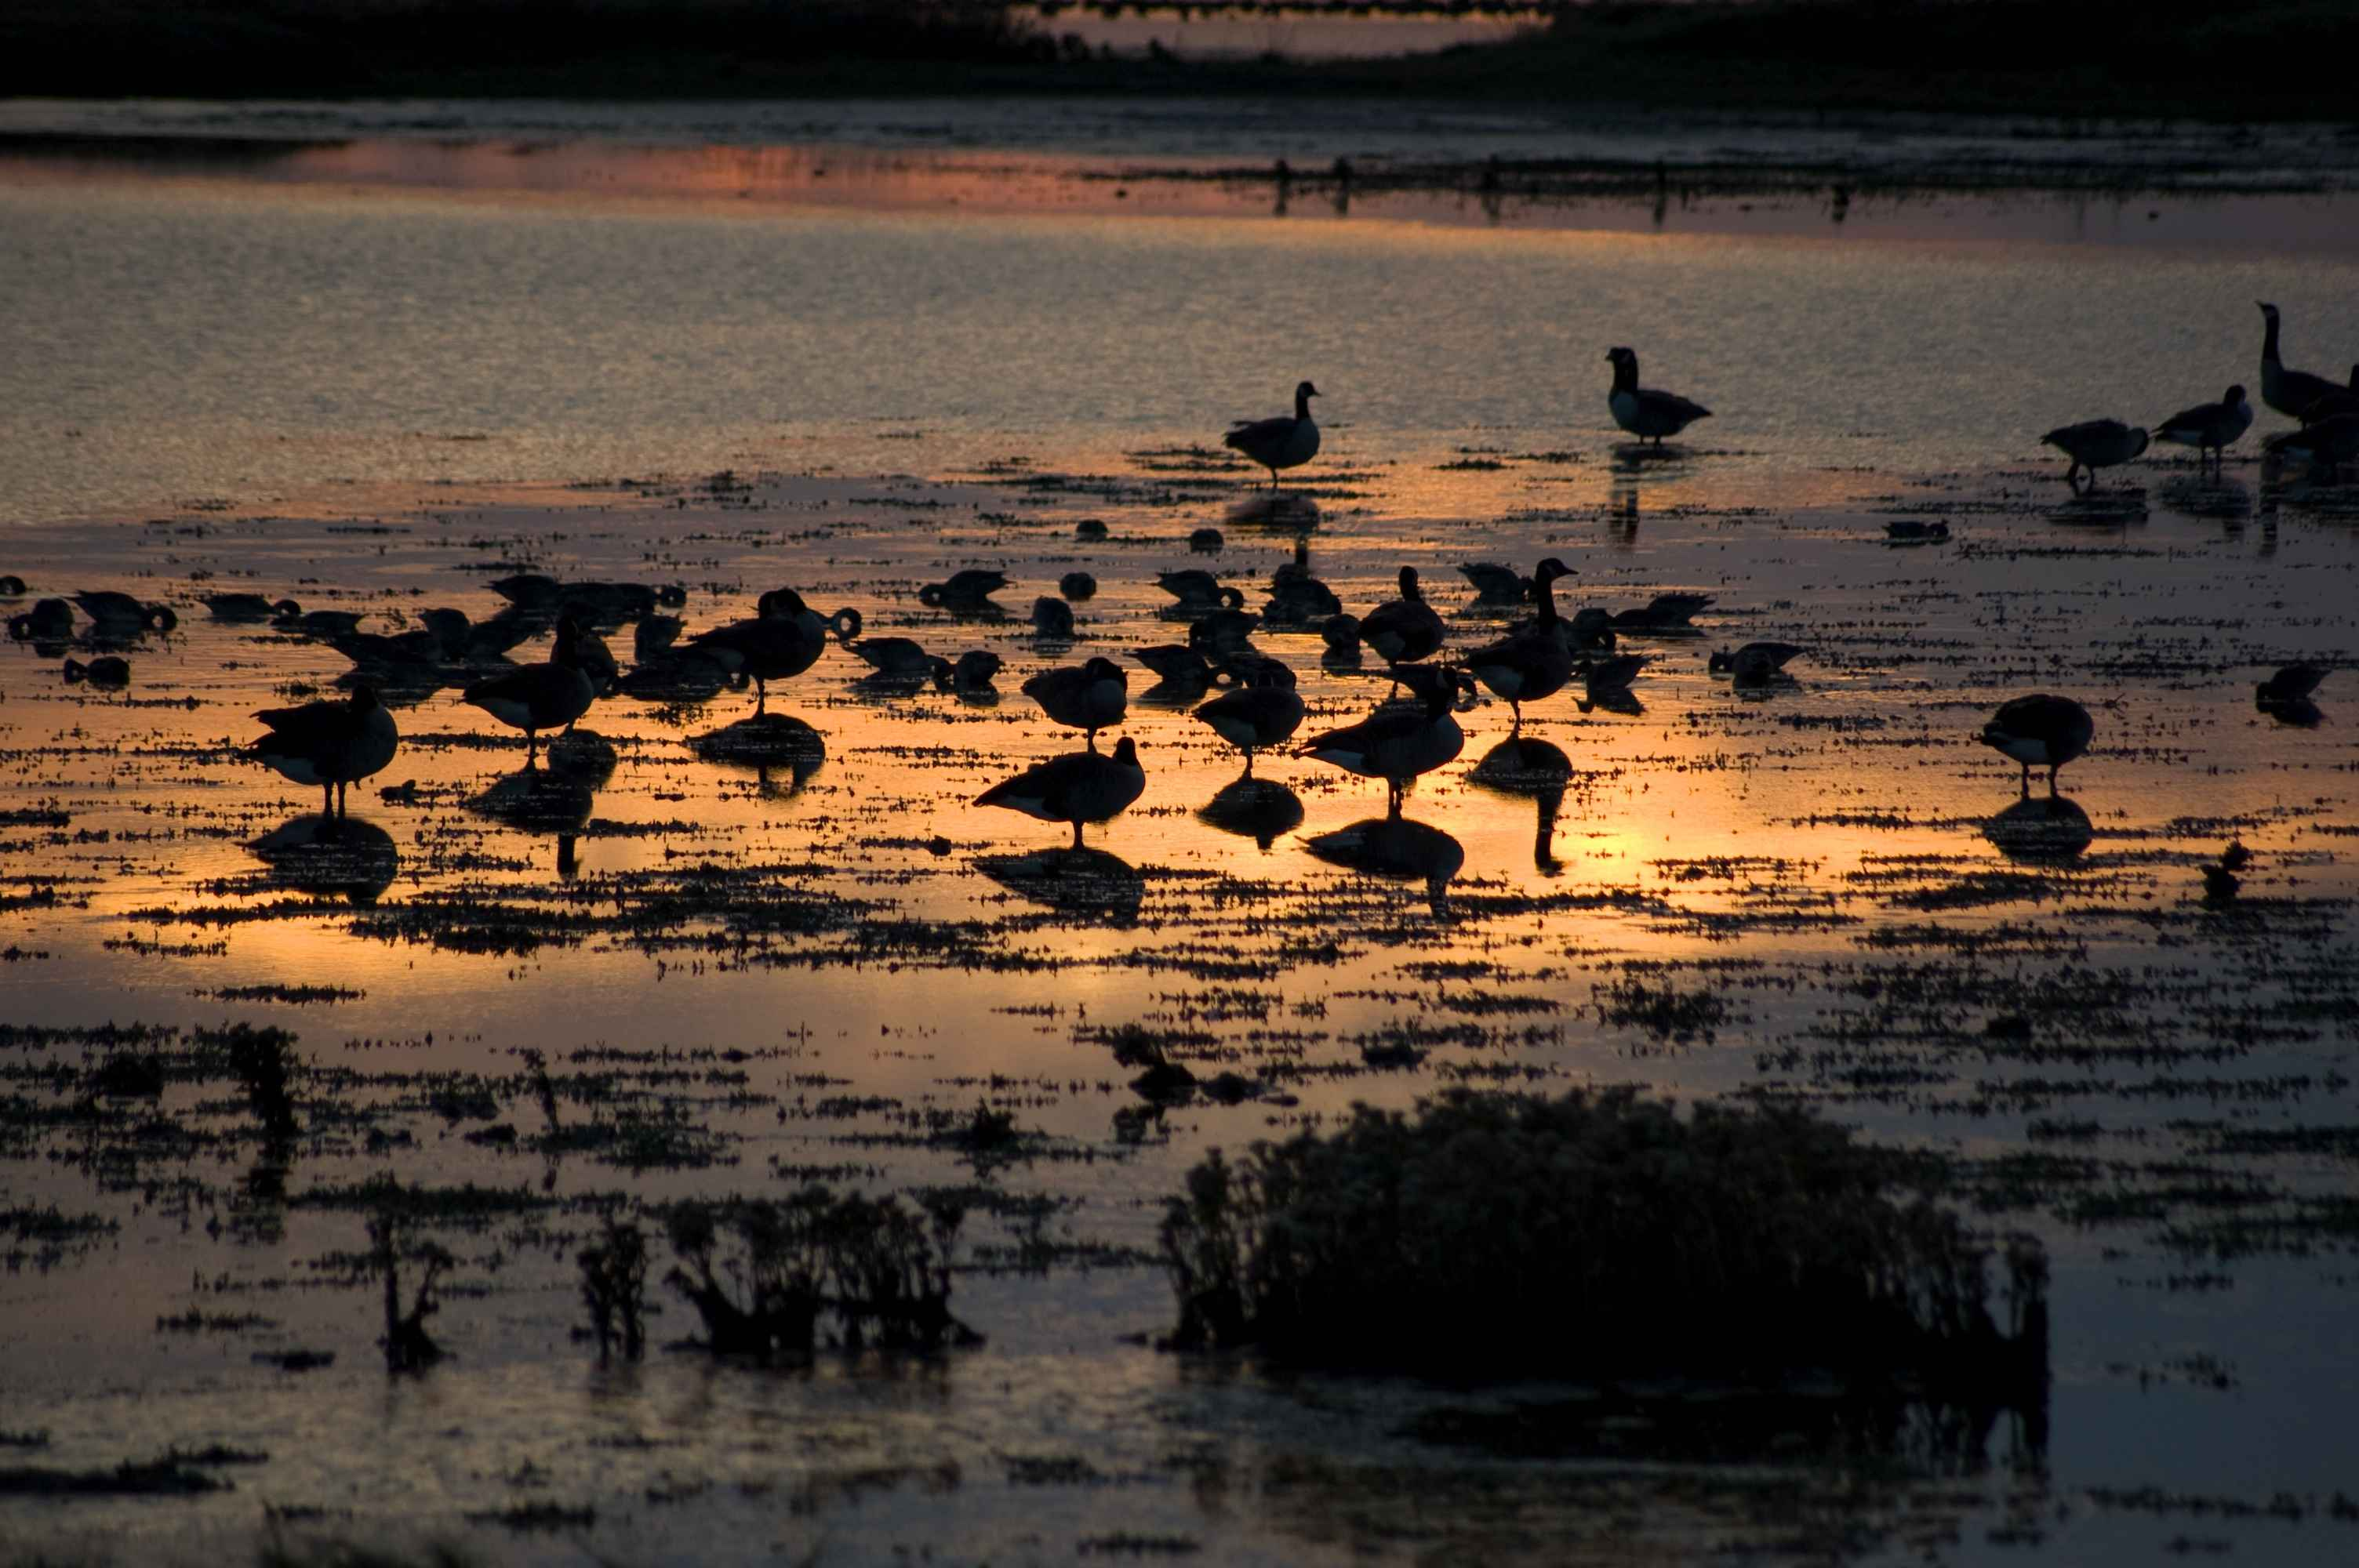 A view of various birds at sunset